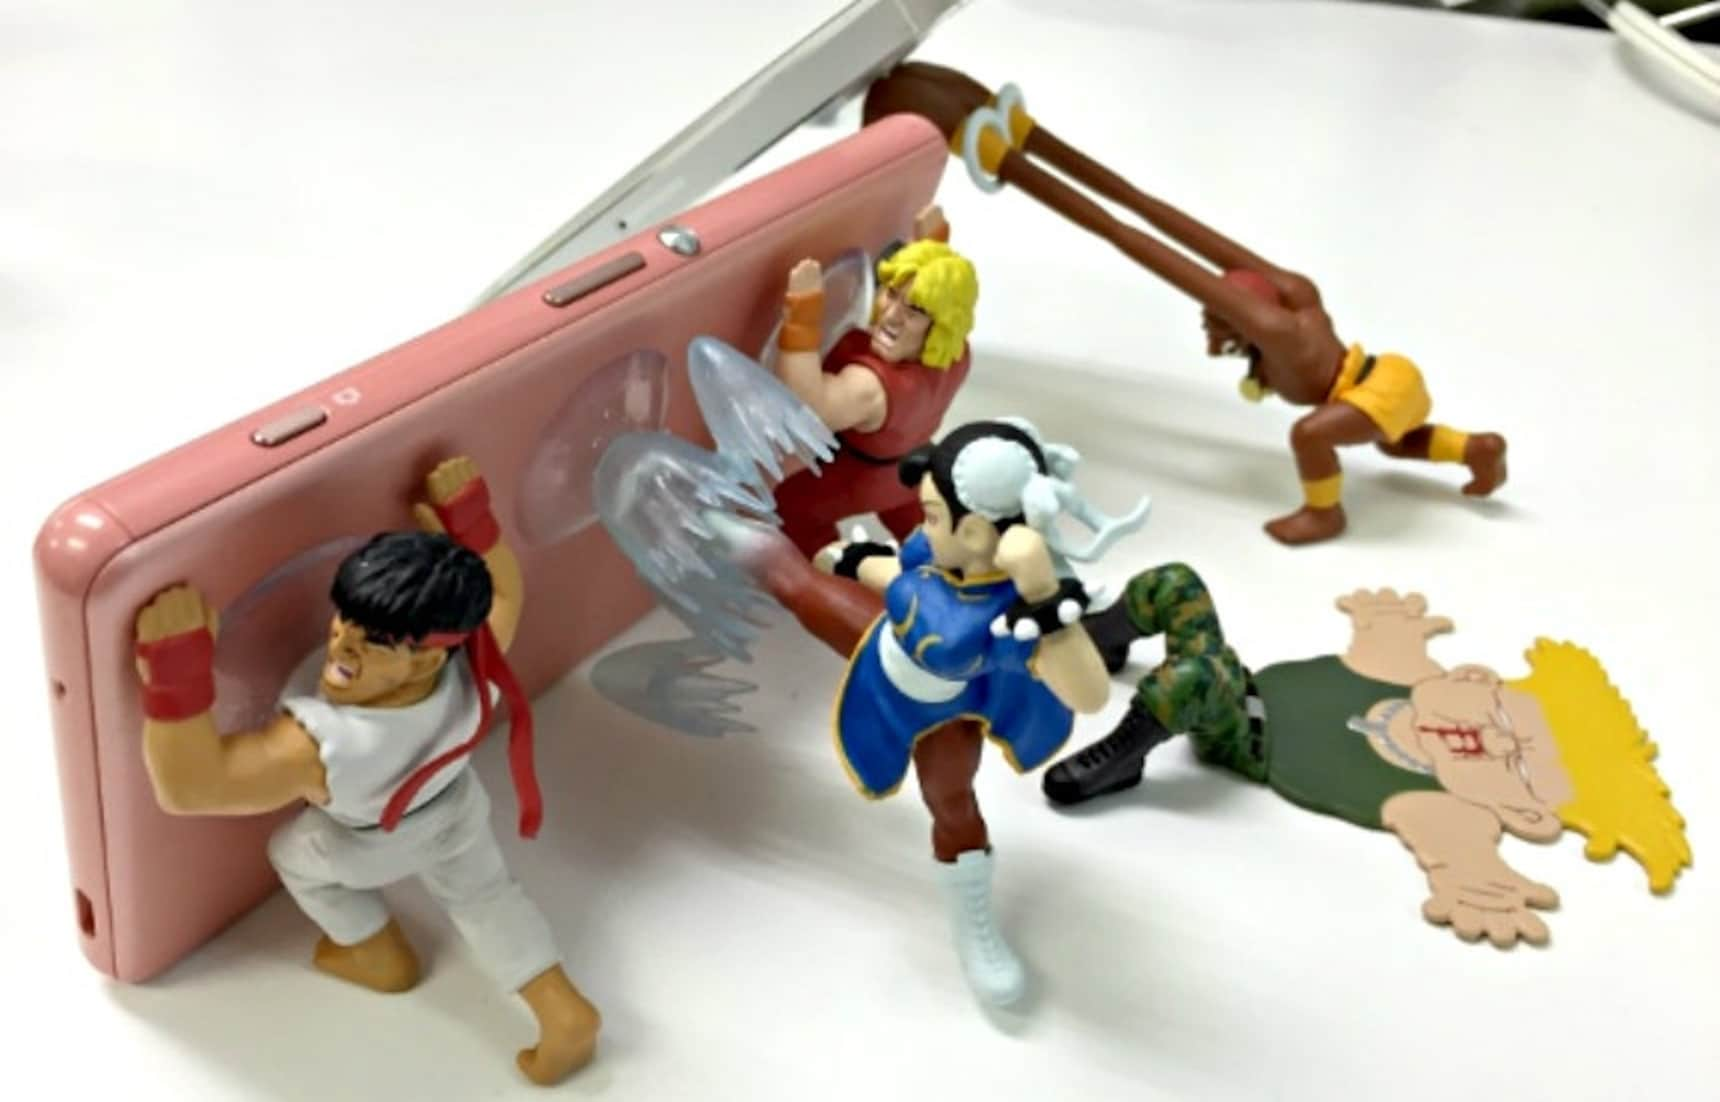 KO Your Smartphone with these Toy Stands